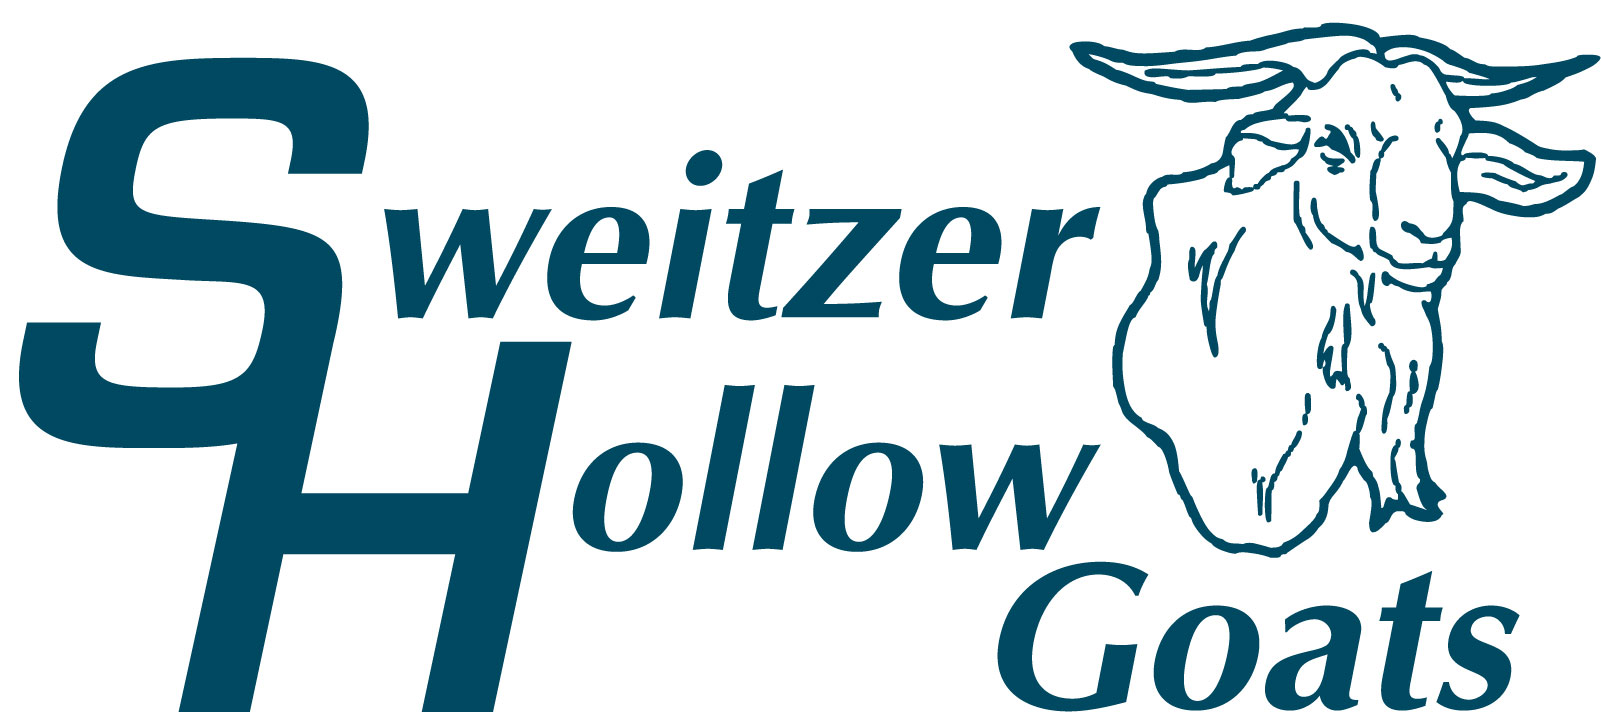 Sweitzer Hollow Goats